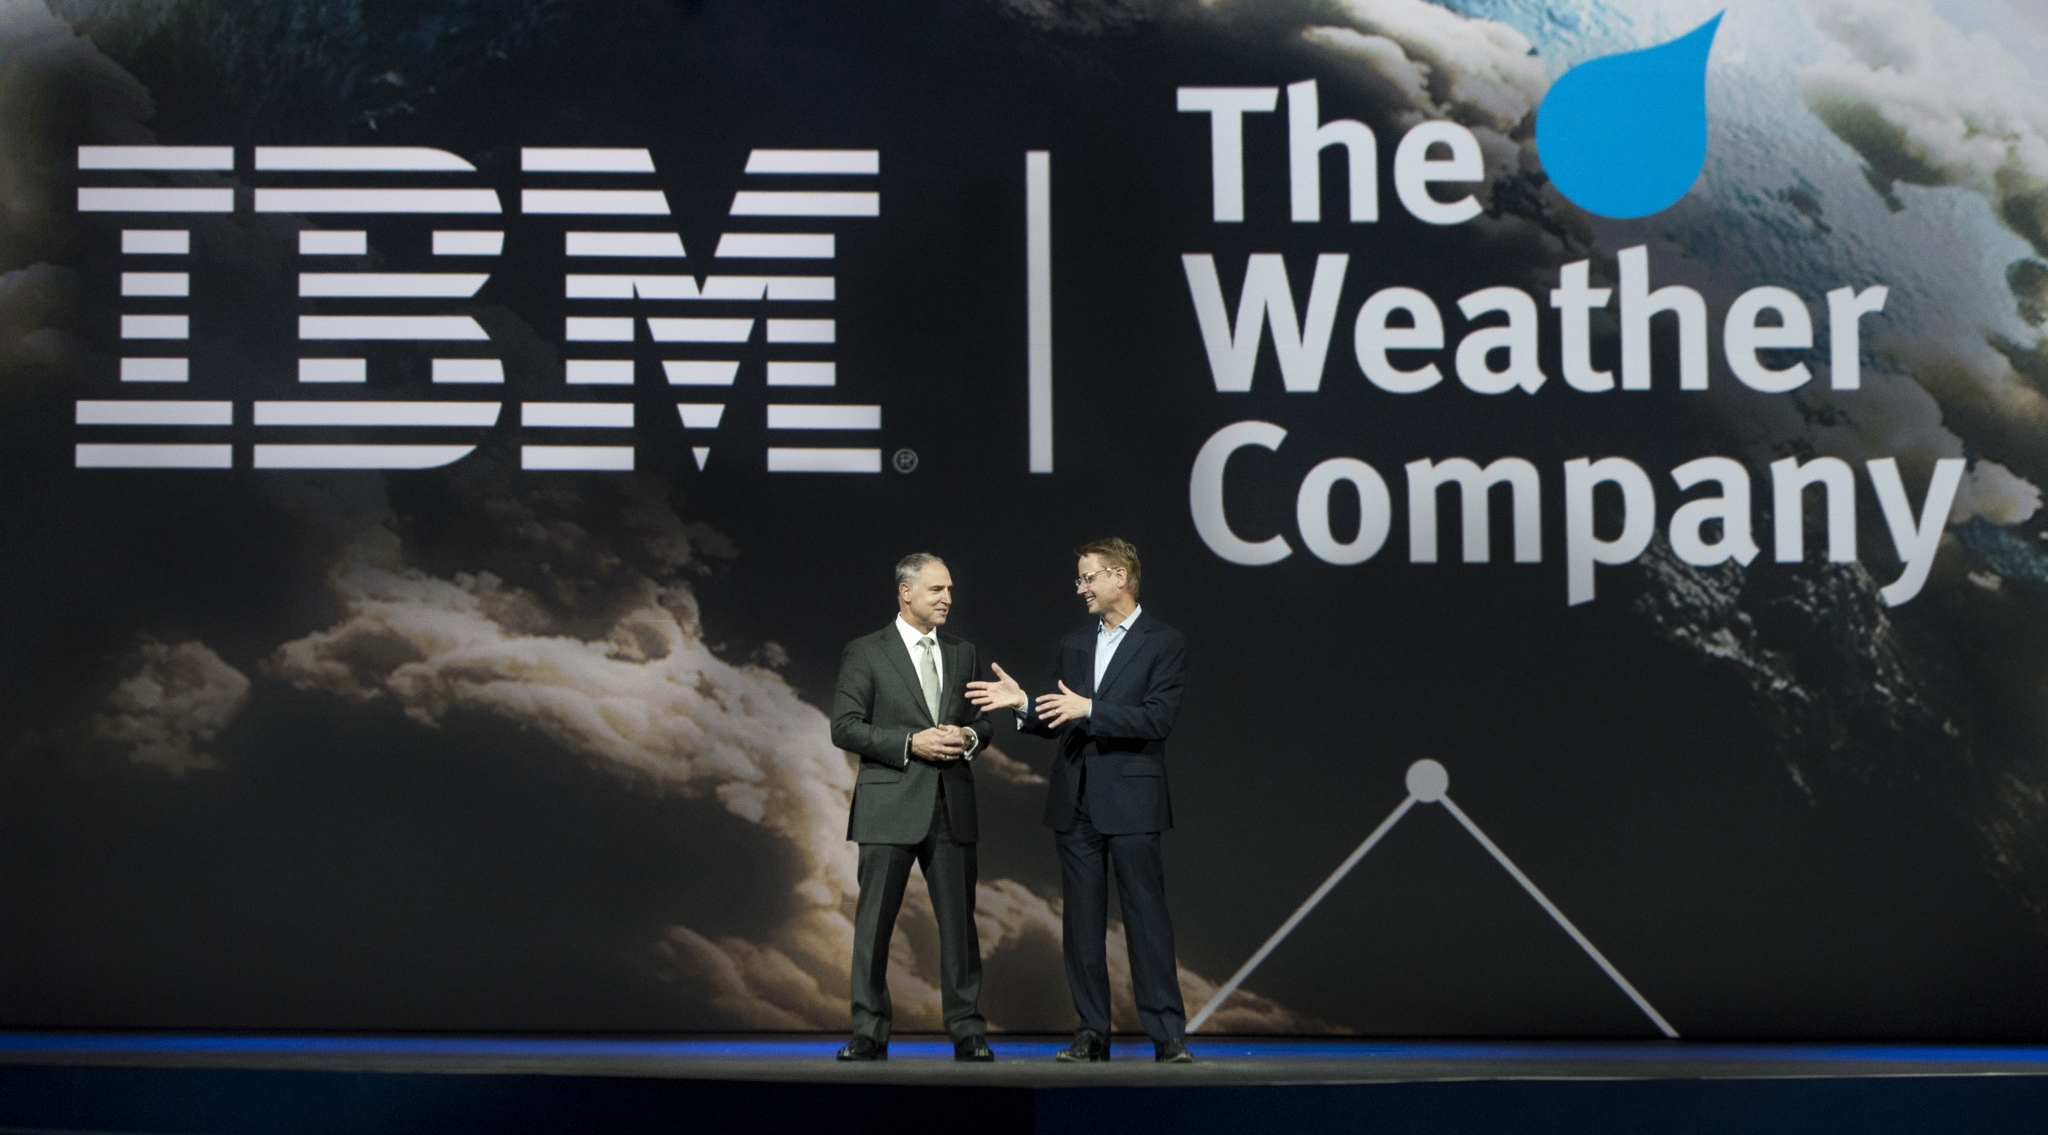 IBM Acquires Weather Company's Digital Properties for $2bn